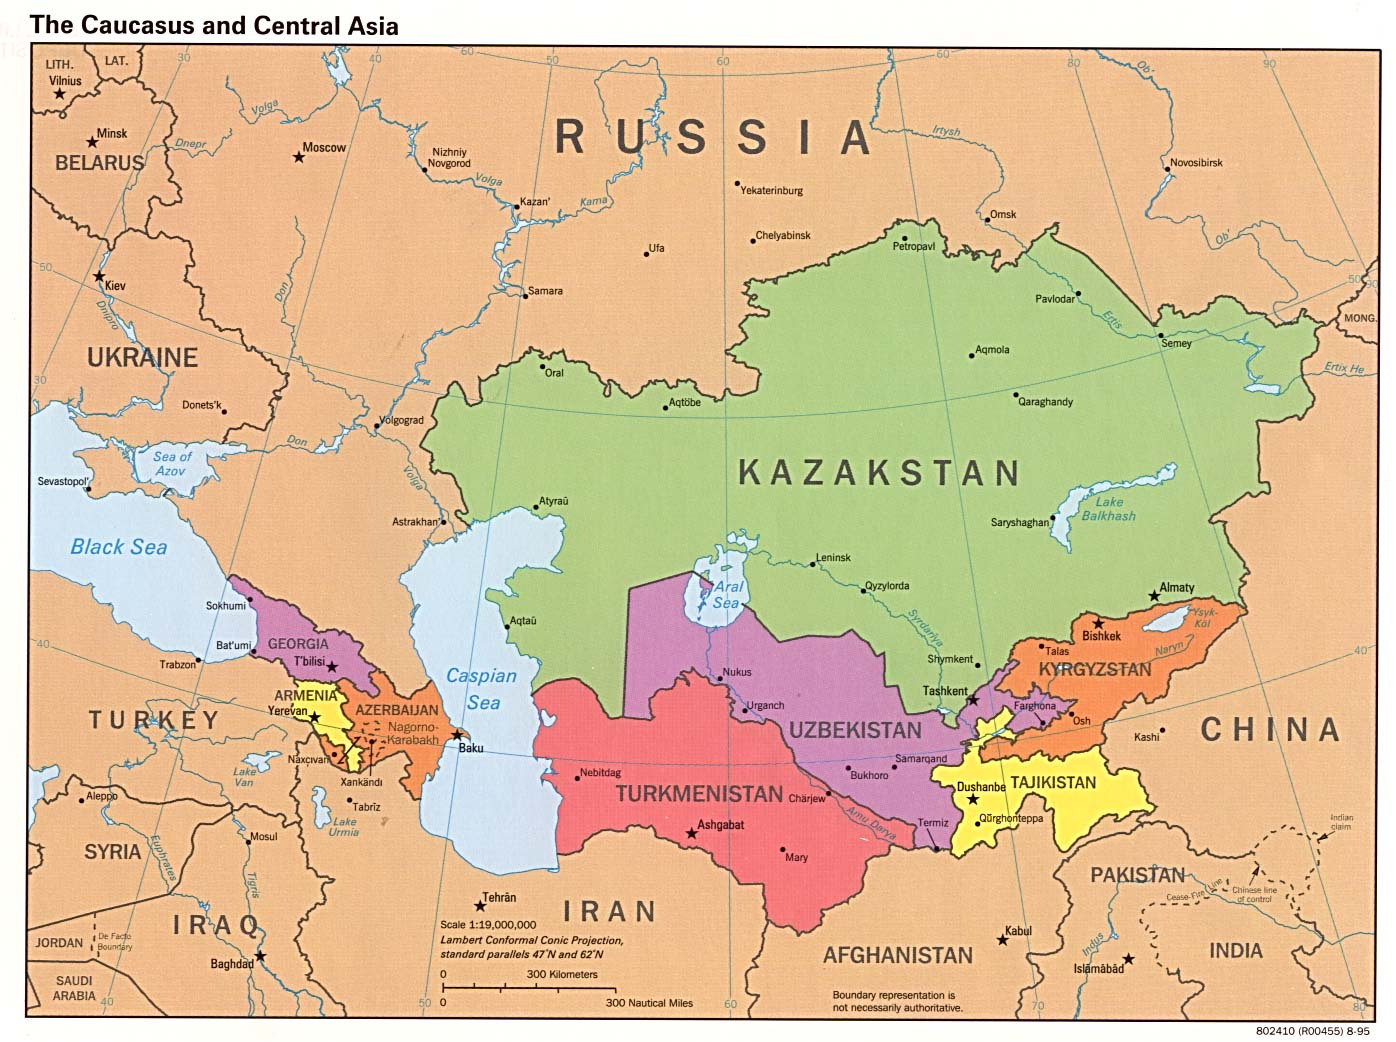 Political Map Of Central Asia.File The Caucasus And Central Asia Political Map Jpg Wikimedia